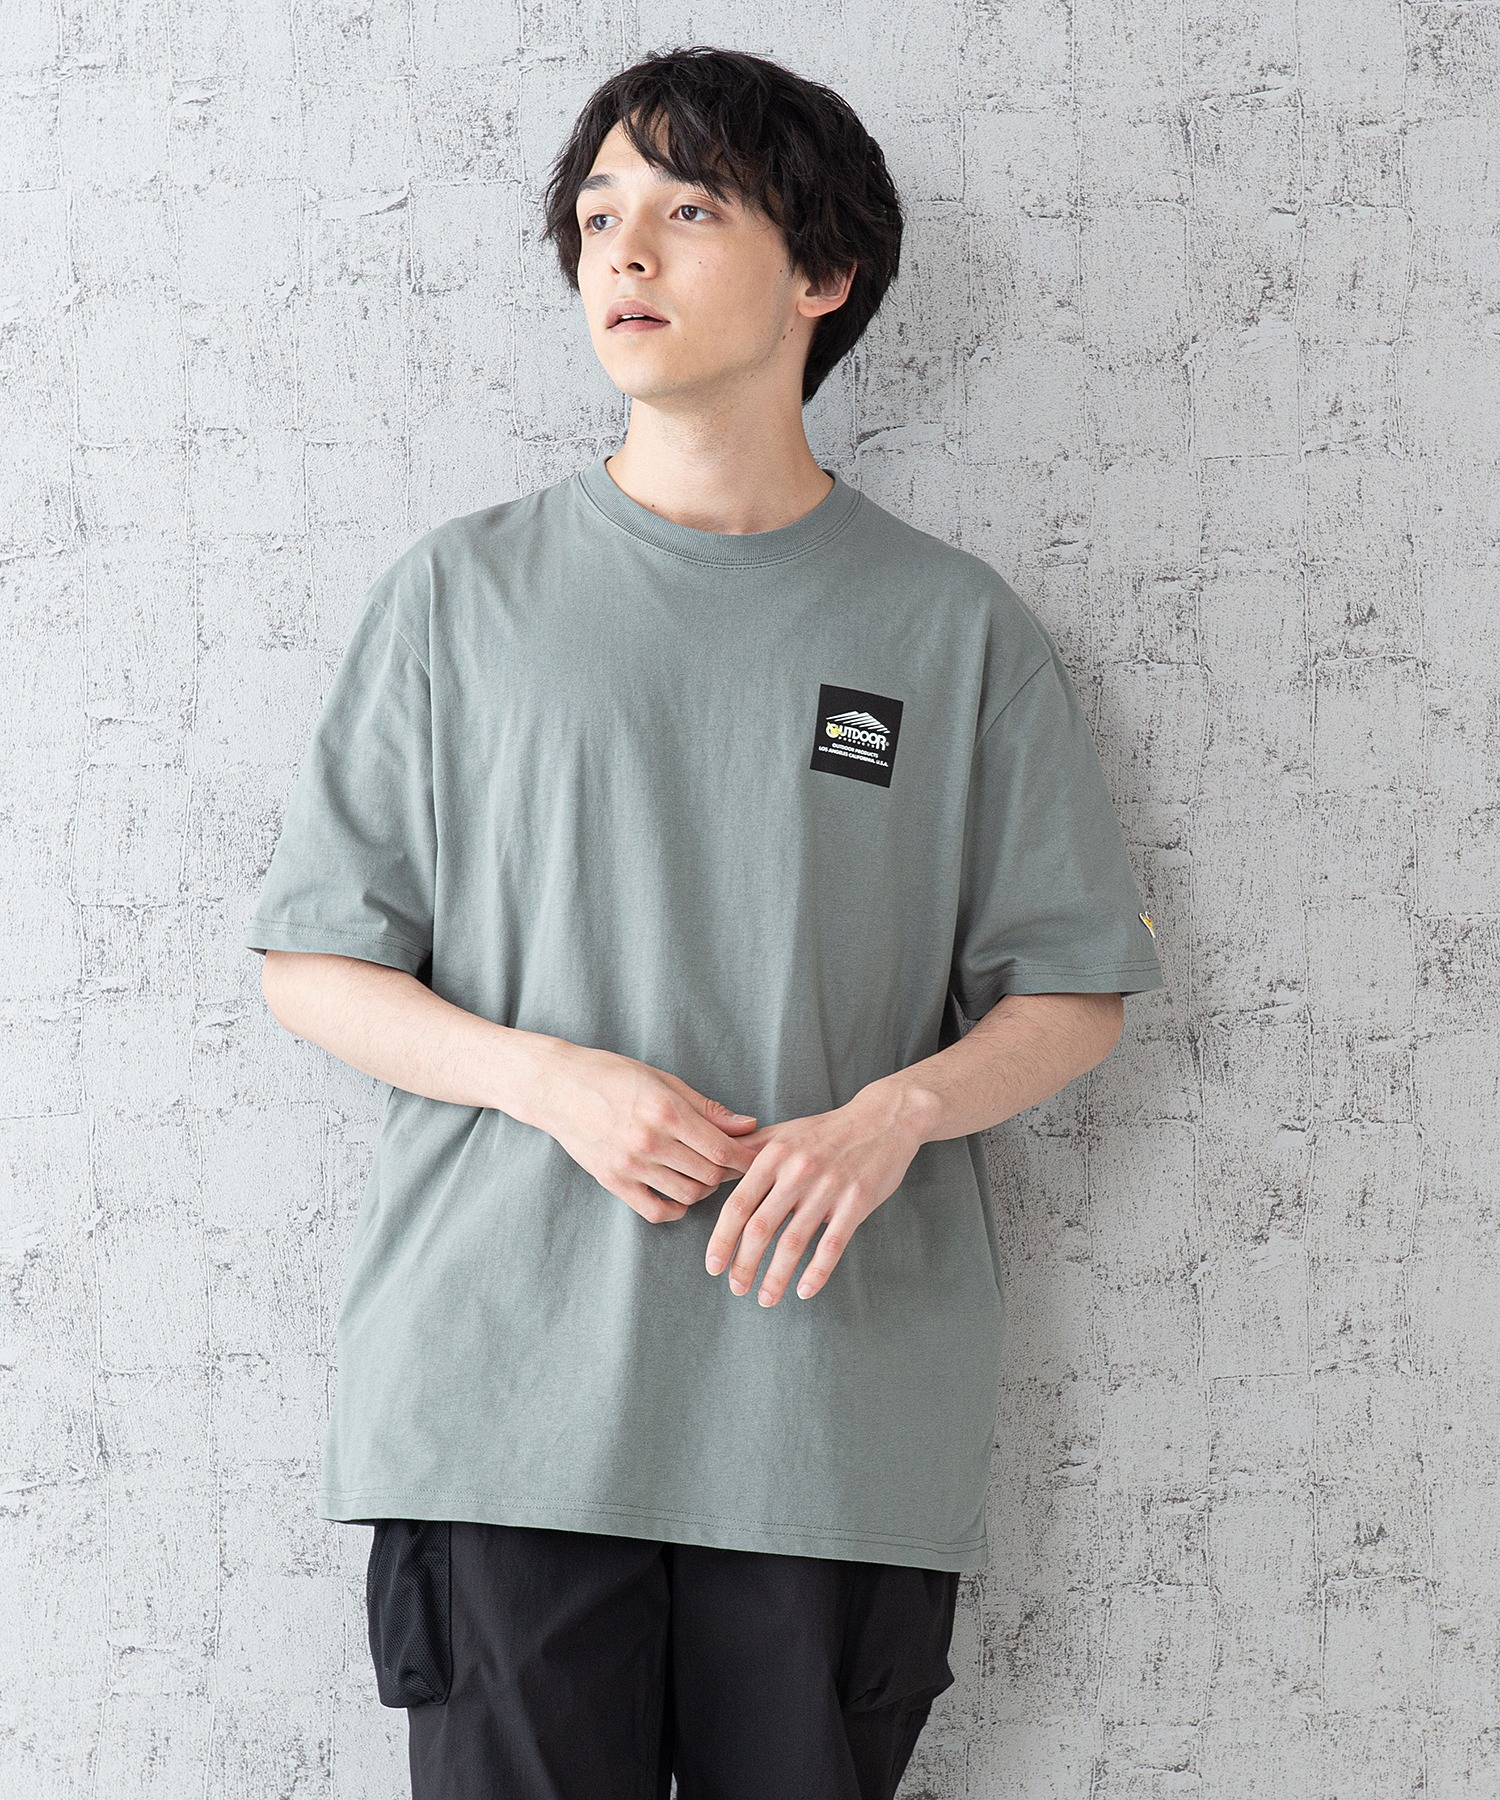 【OUTDOOR PRODUCTS × Mark Gonzales】バックプリント コラボTシャツ